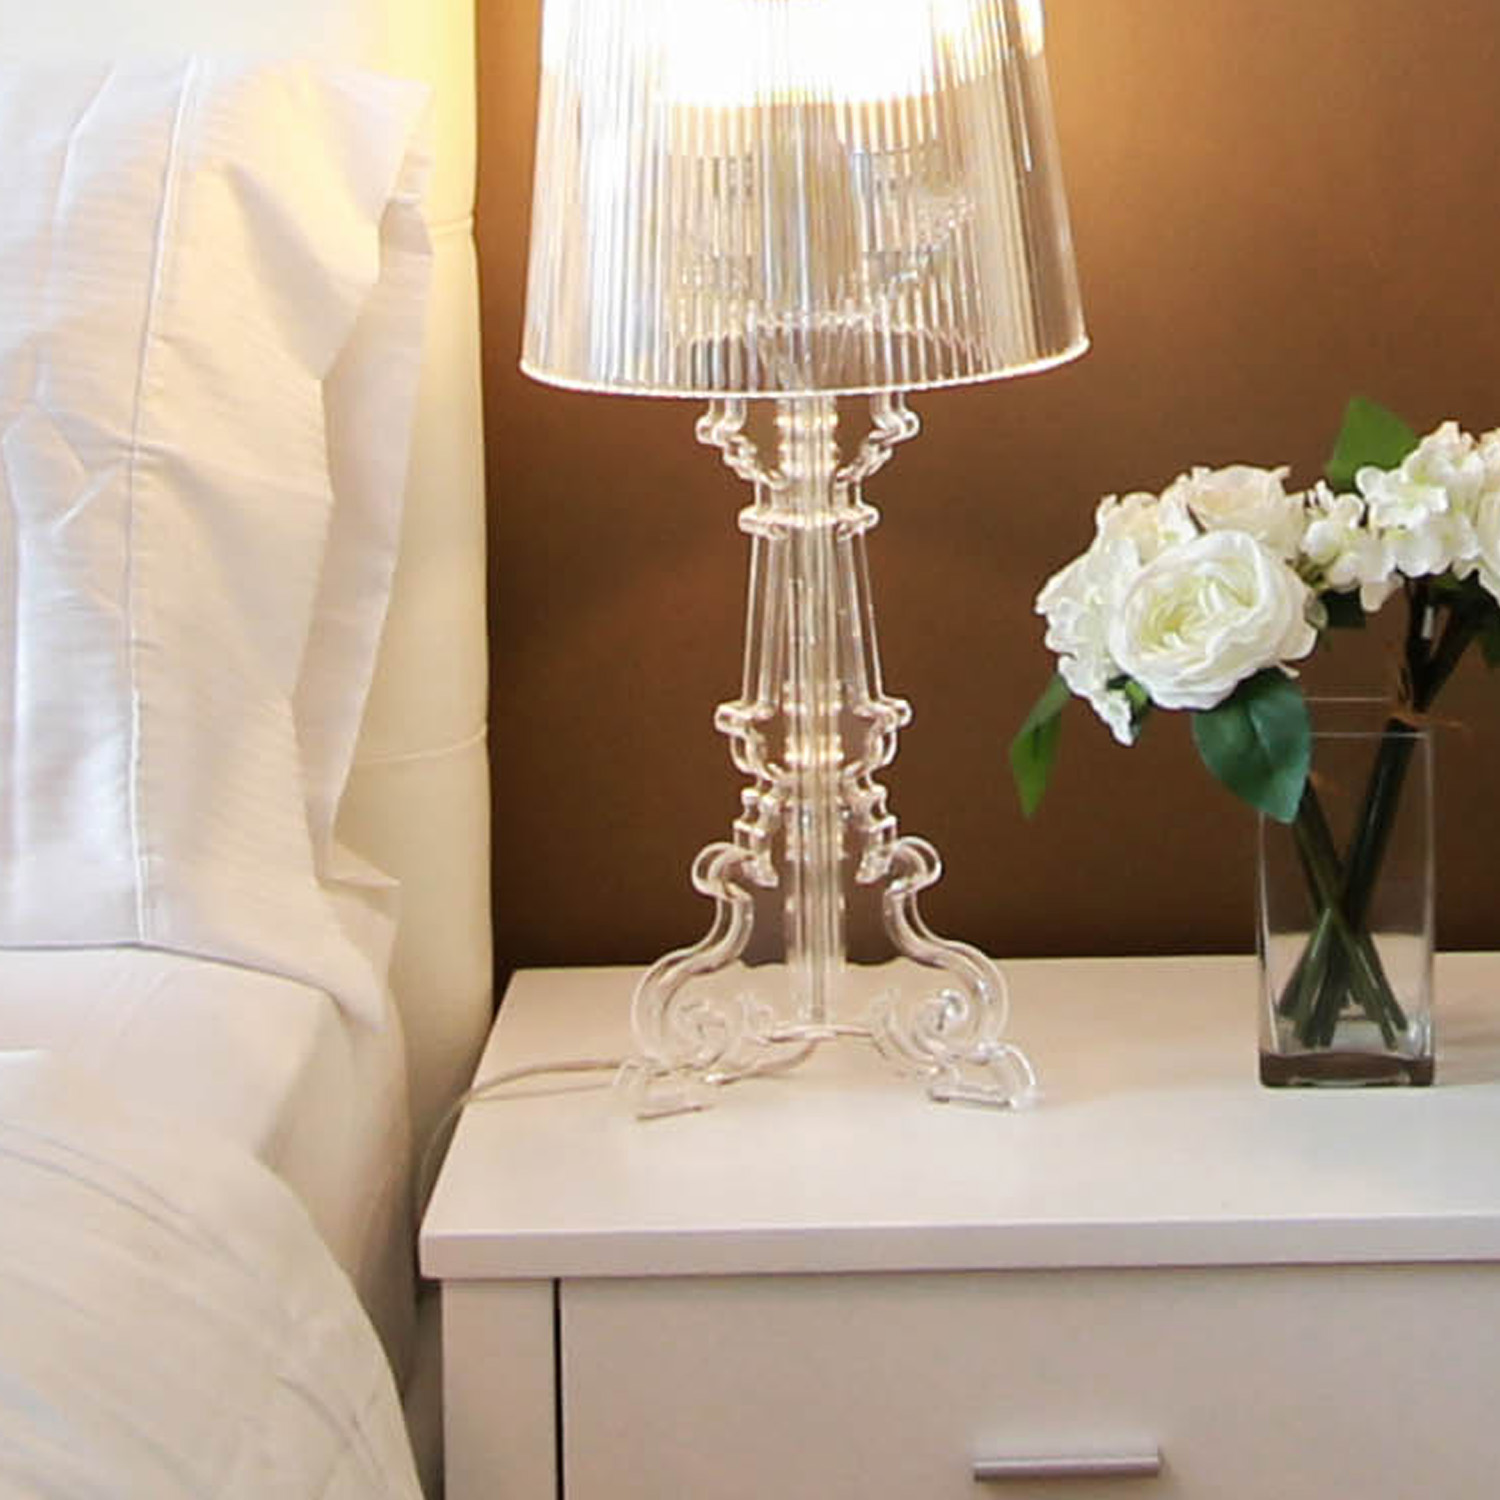 Lamp and small vase of flowers on nightstand next to made bed